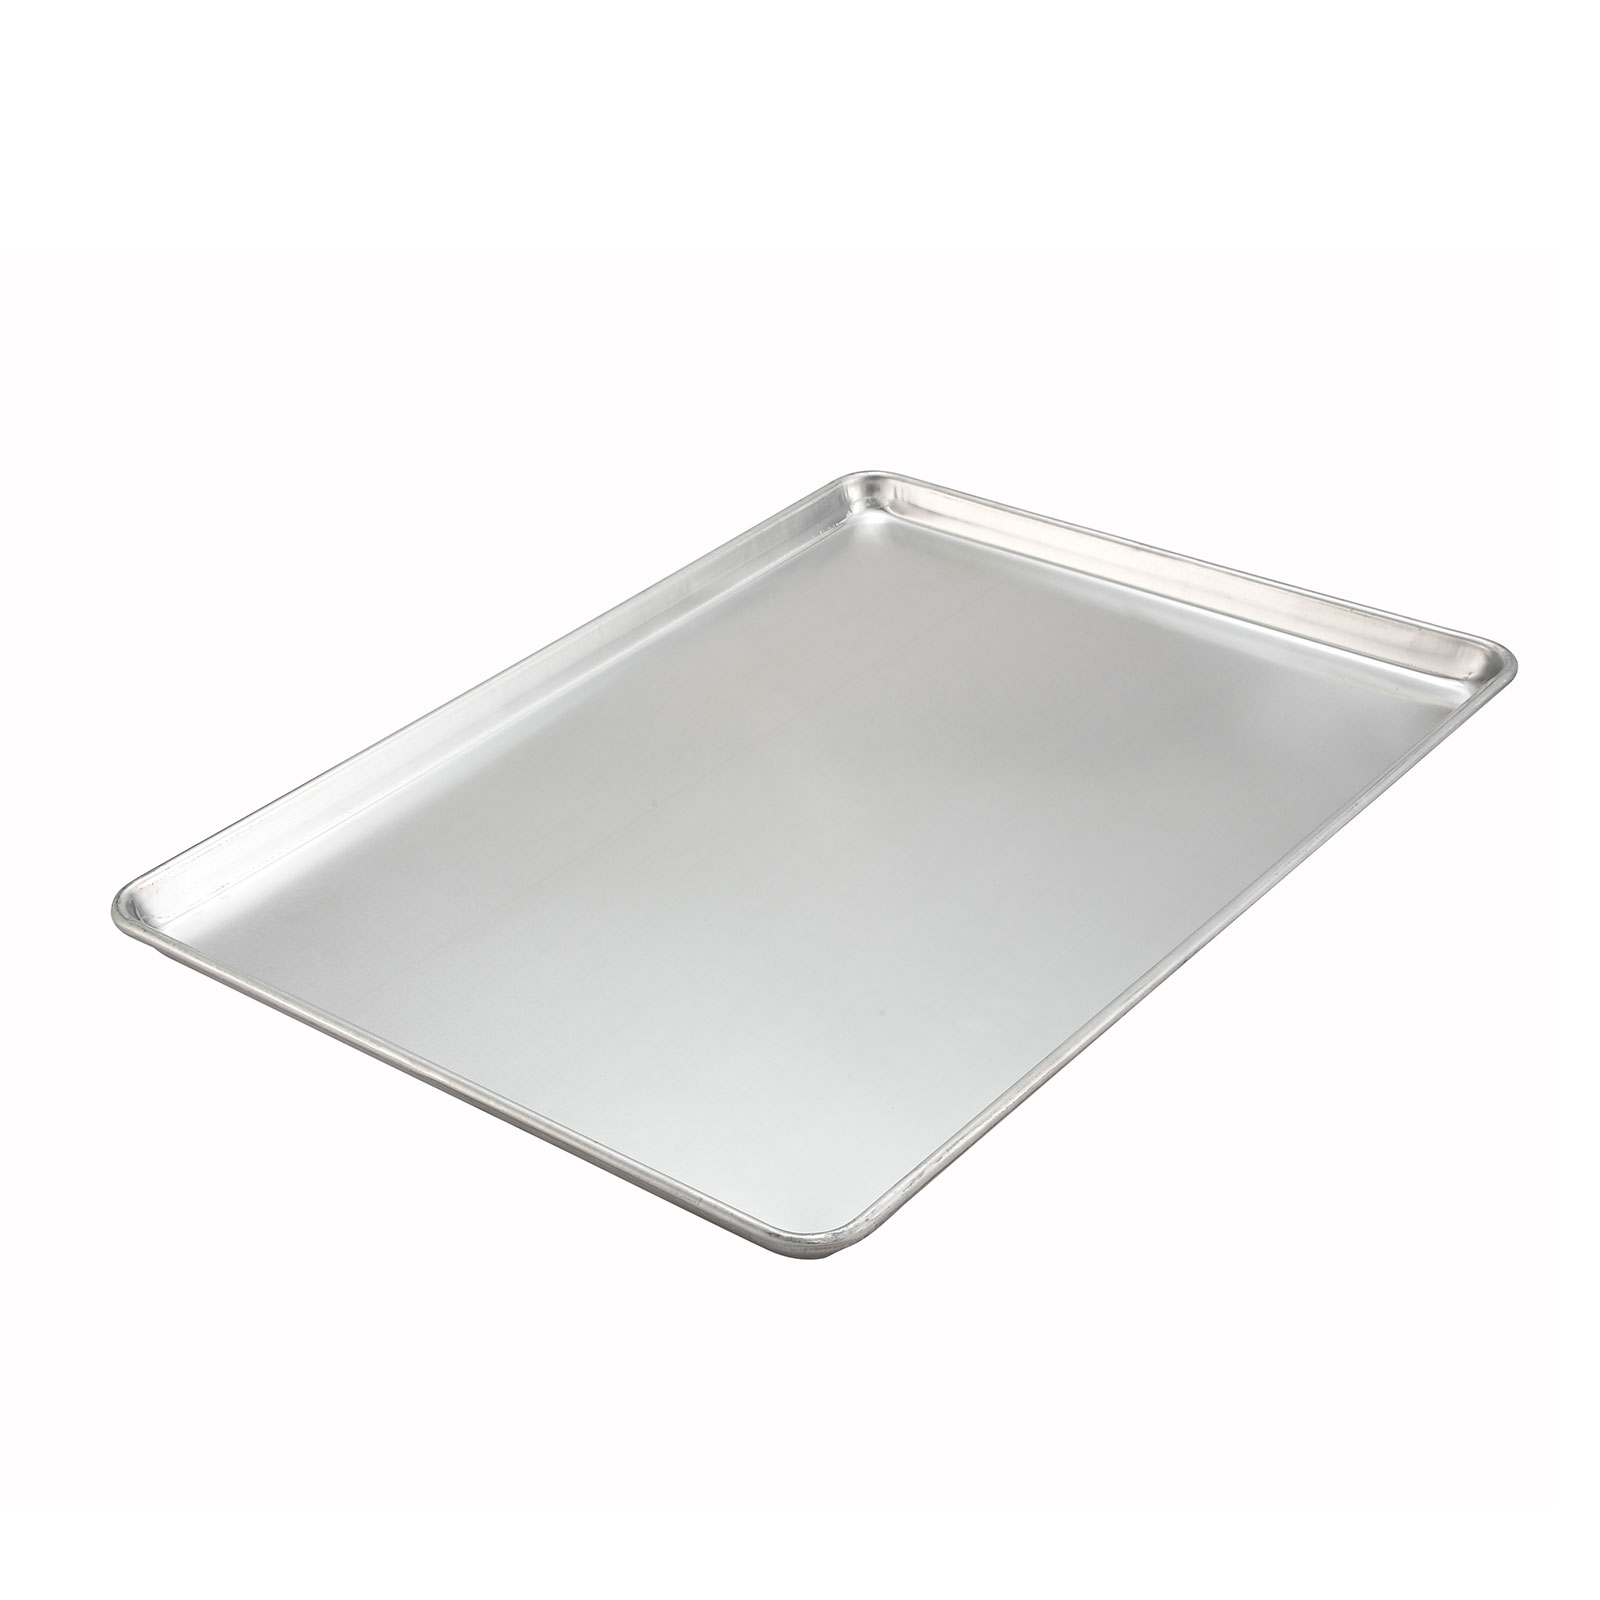 1800-01 Winco ALXP-1826 Full bun / sheet pan